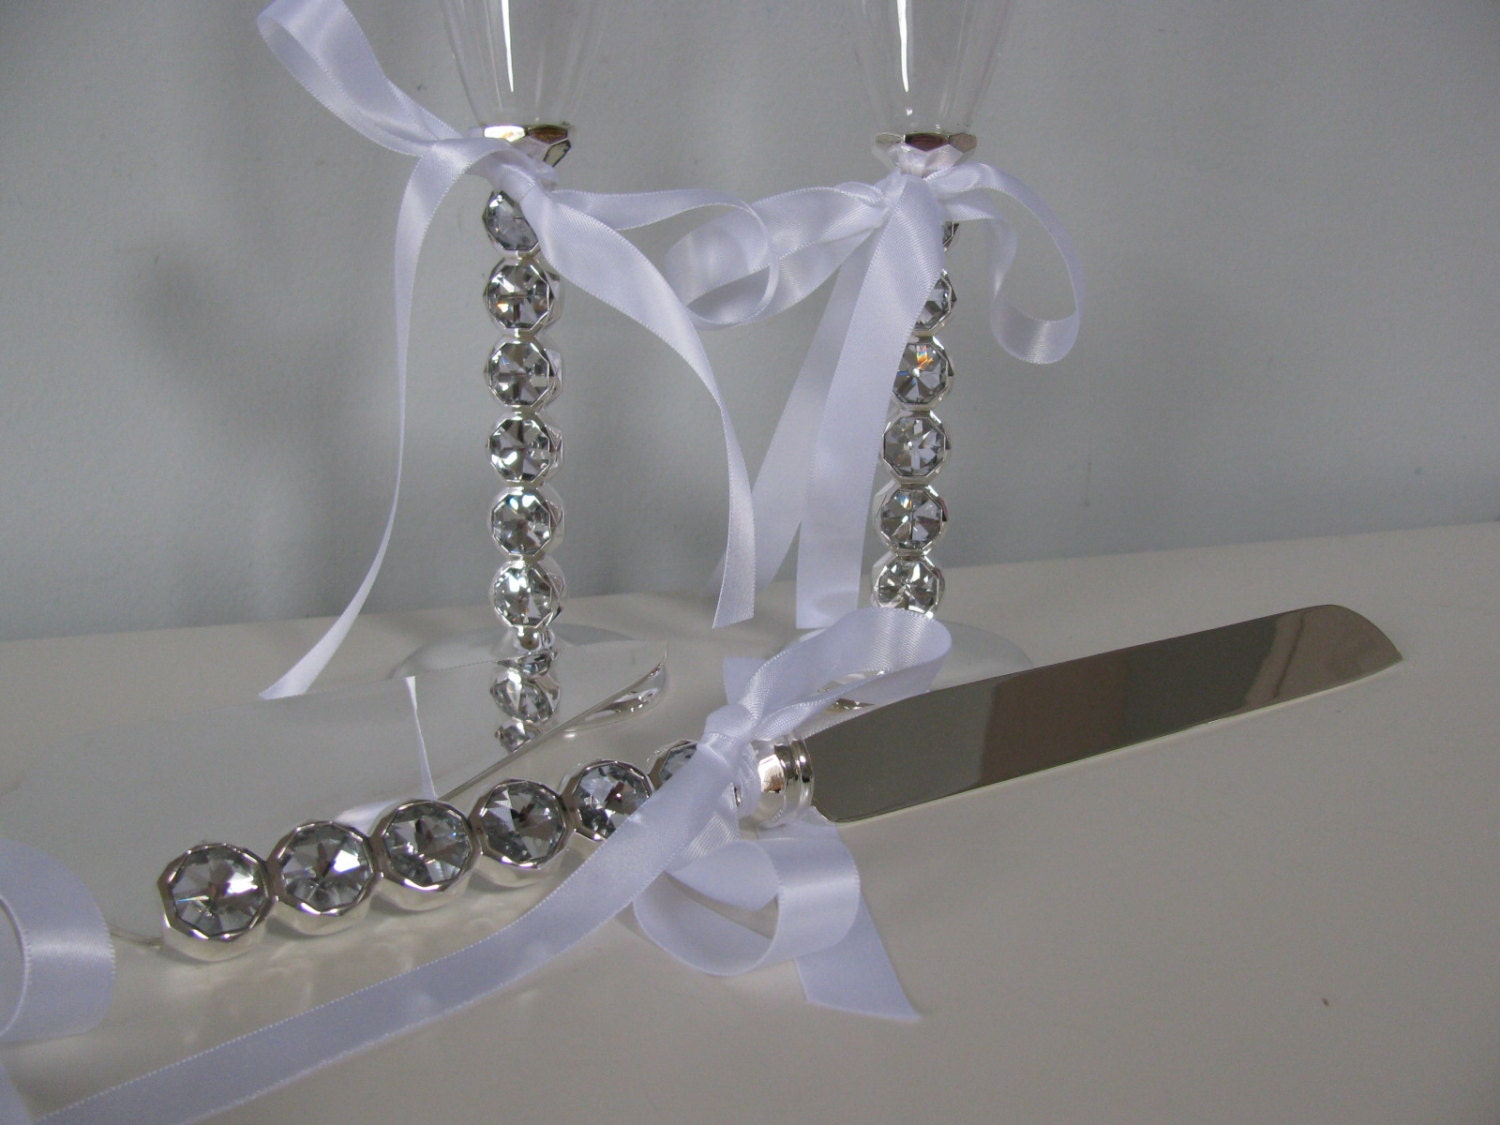 Wedding Cake Serving Set And Toasting Glasses By